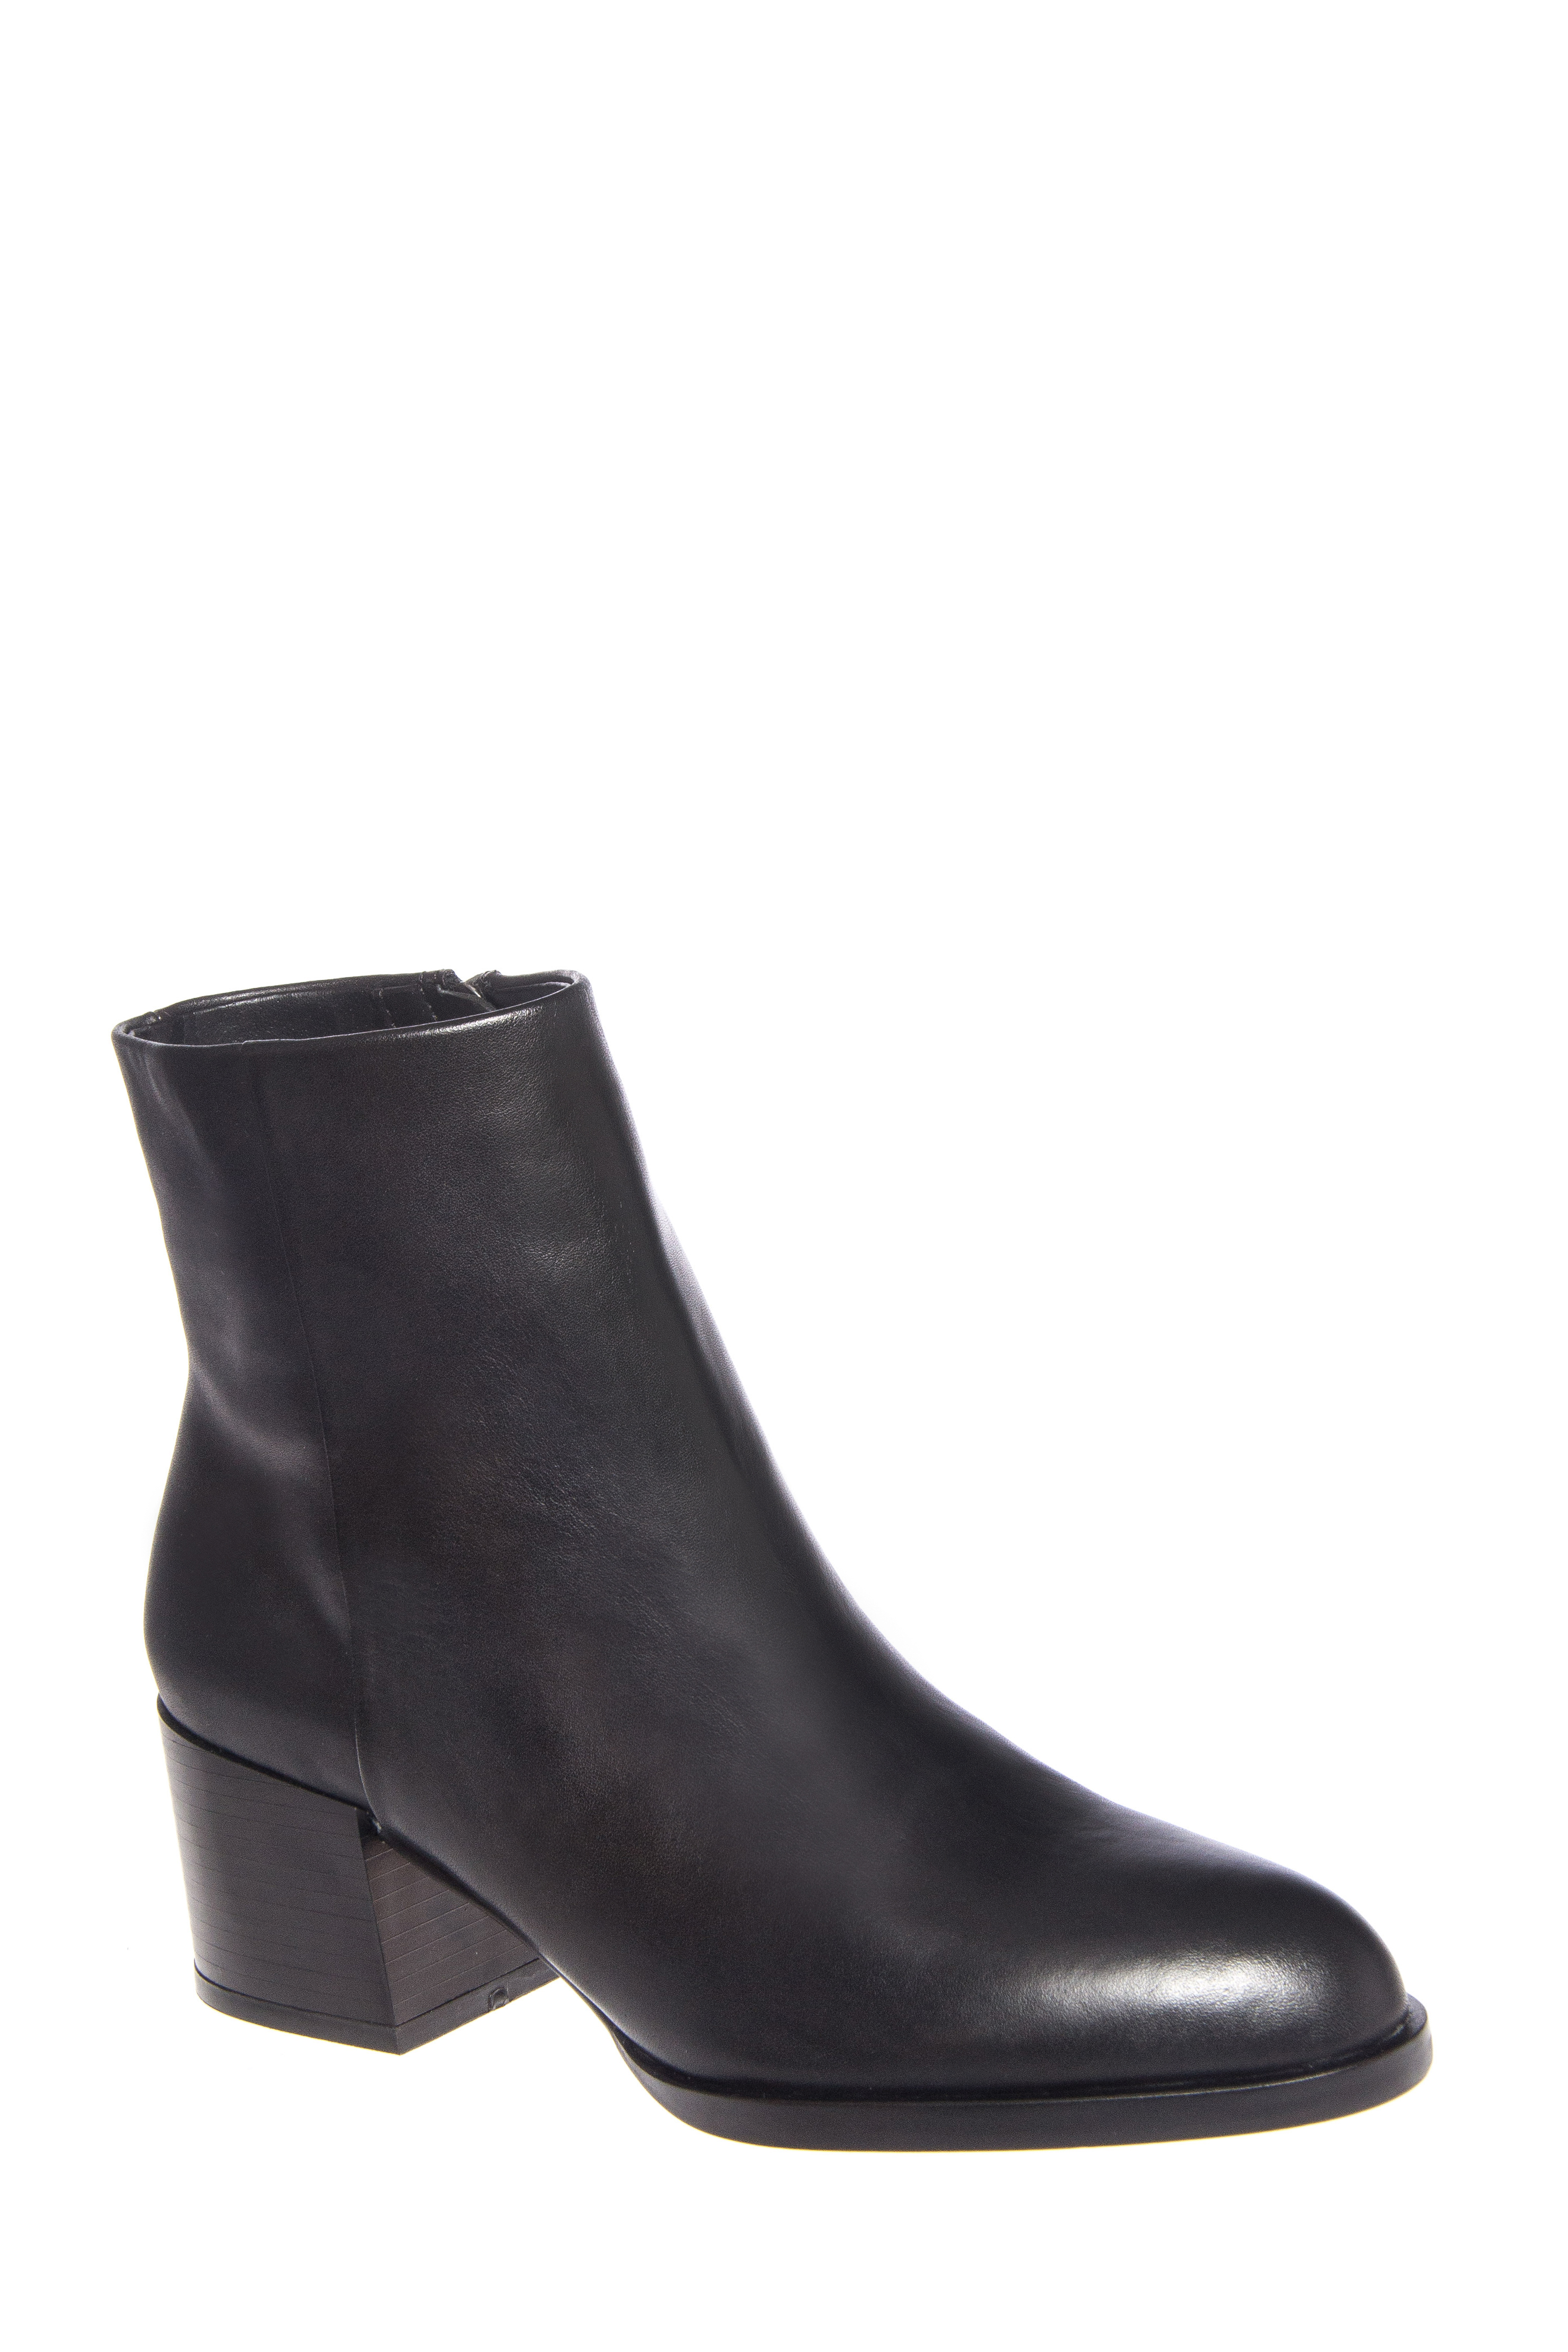 Sam Edelman Joey Mid Heel Booties